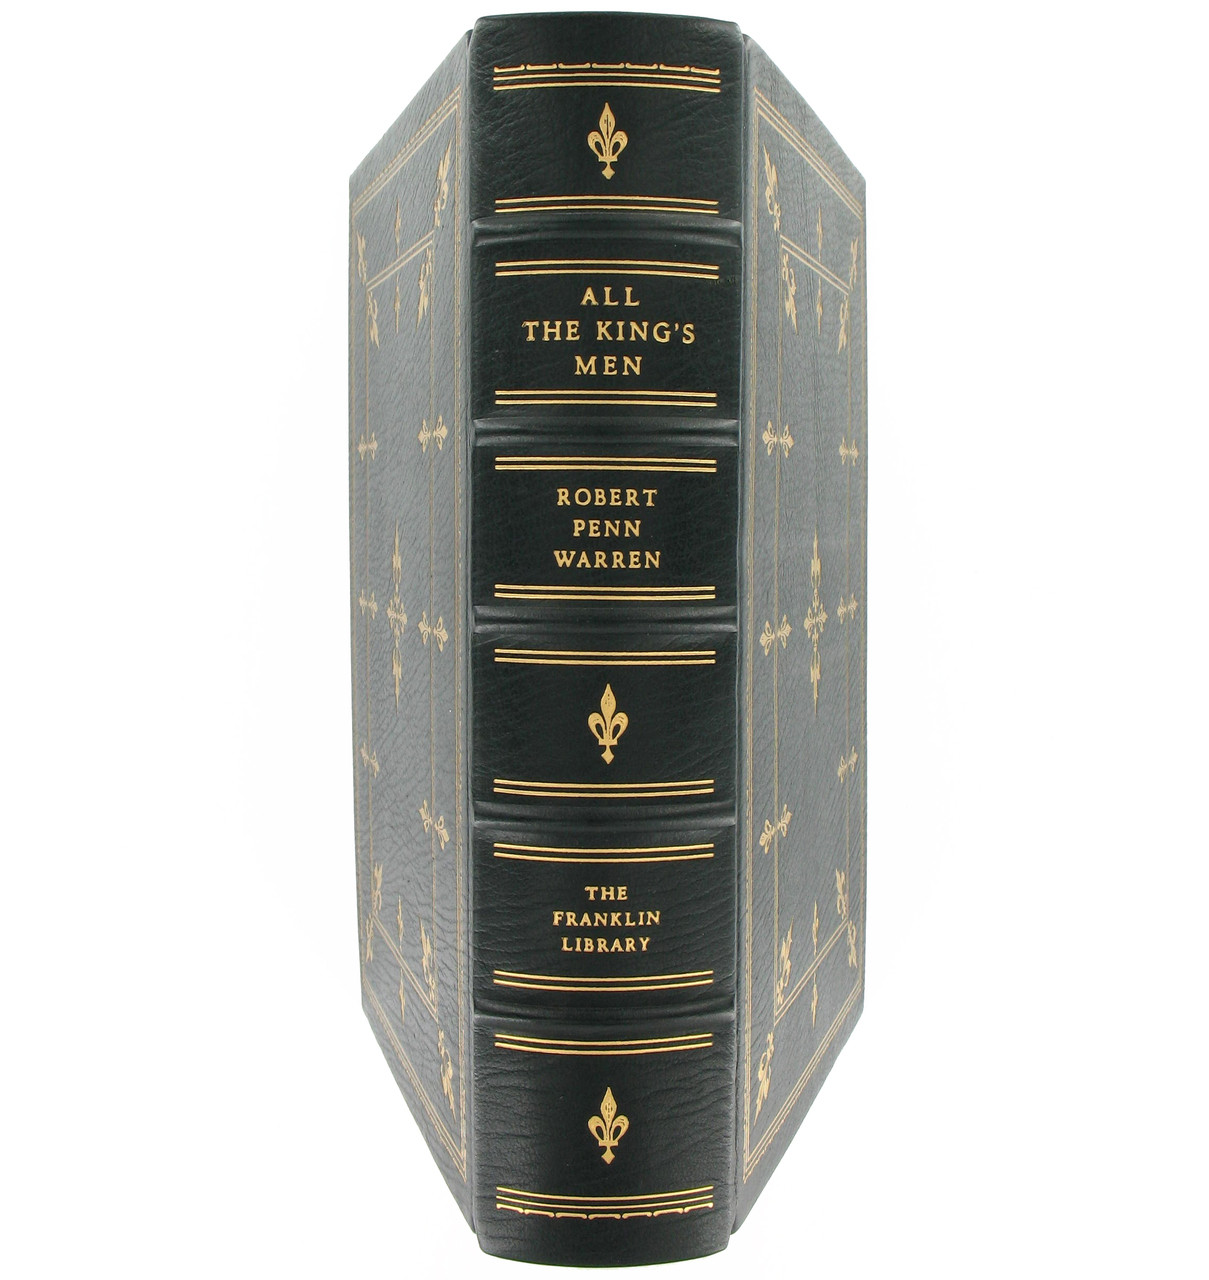 All the King's Men, Robert Penn Warren, Signed Limited Edition